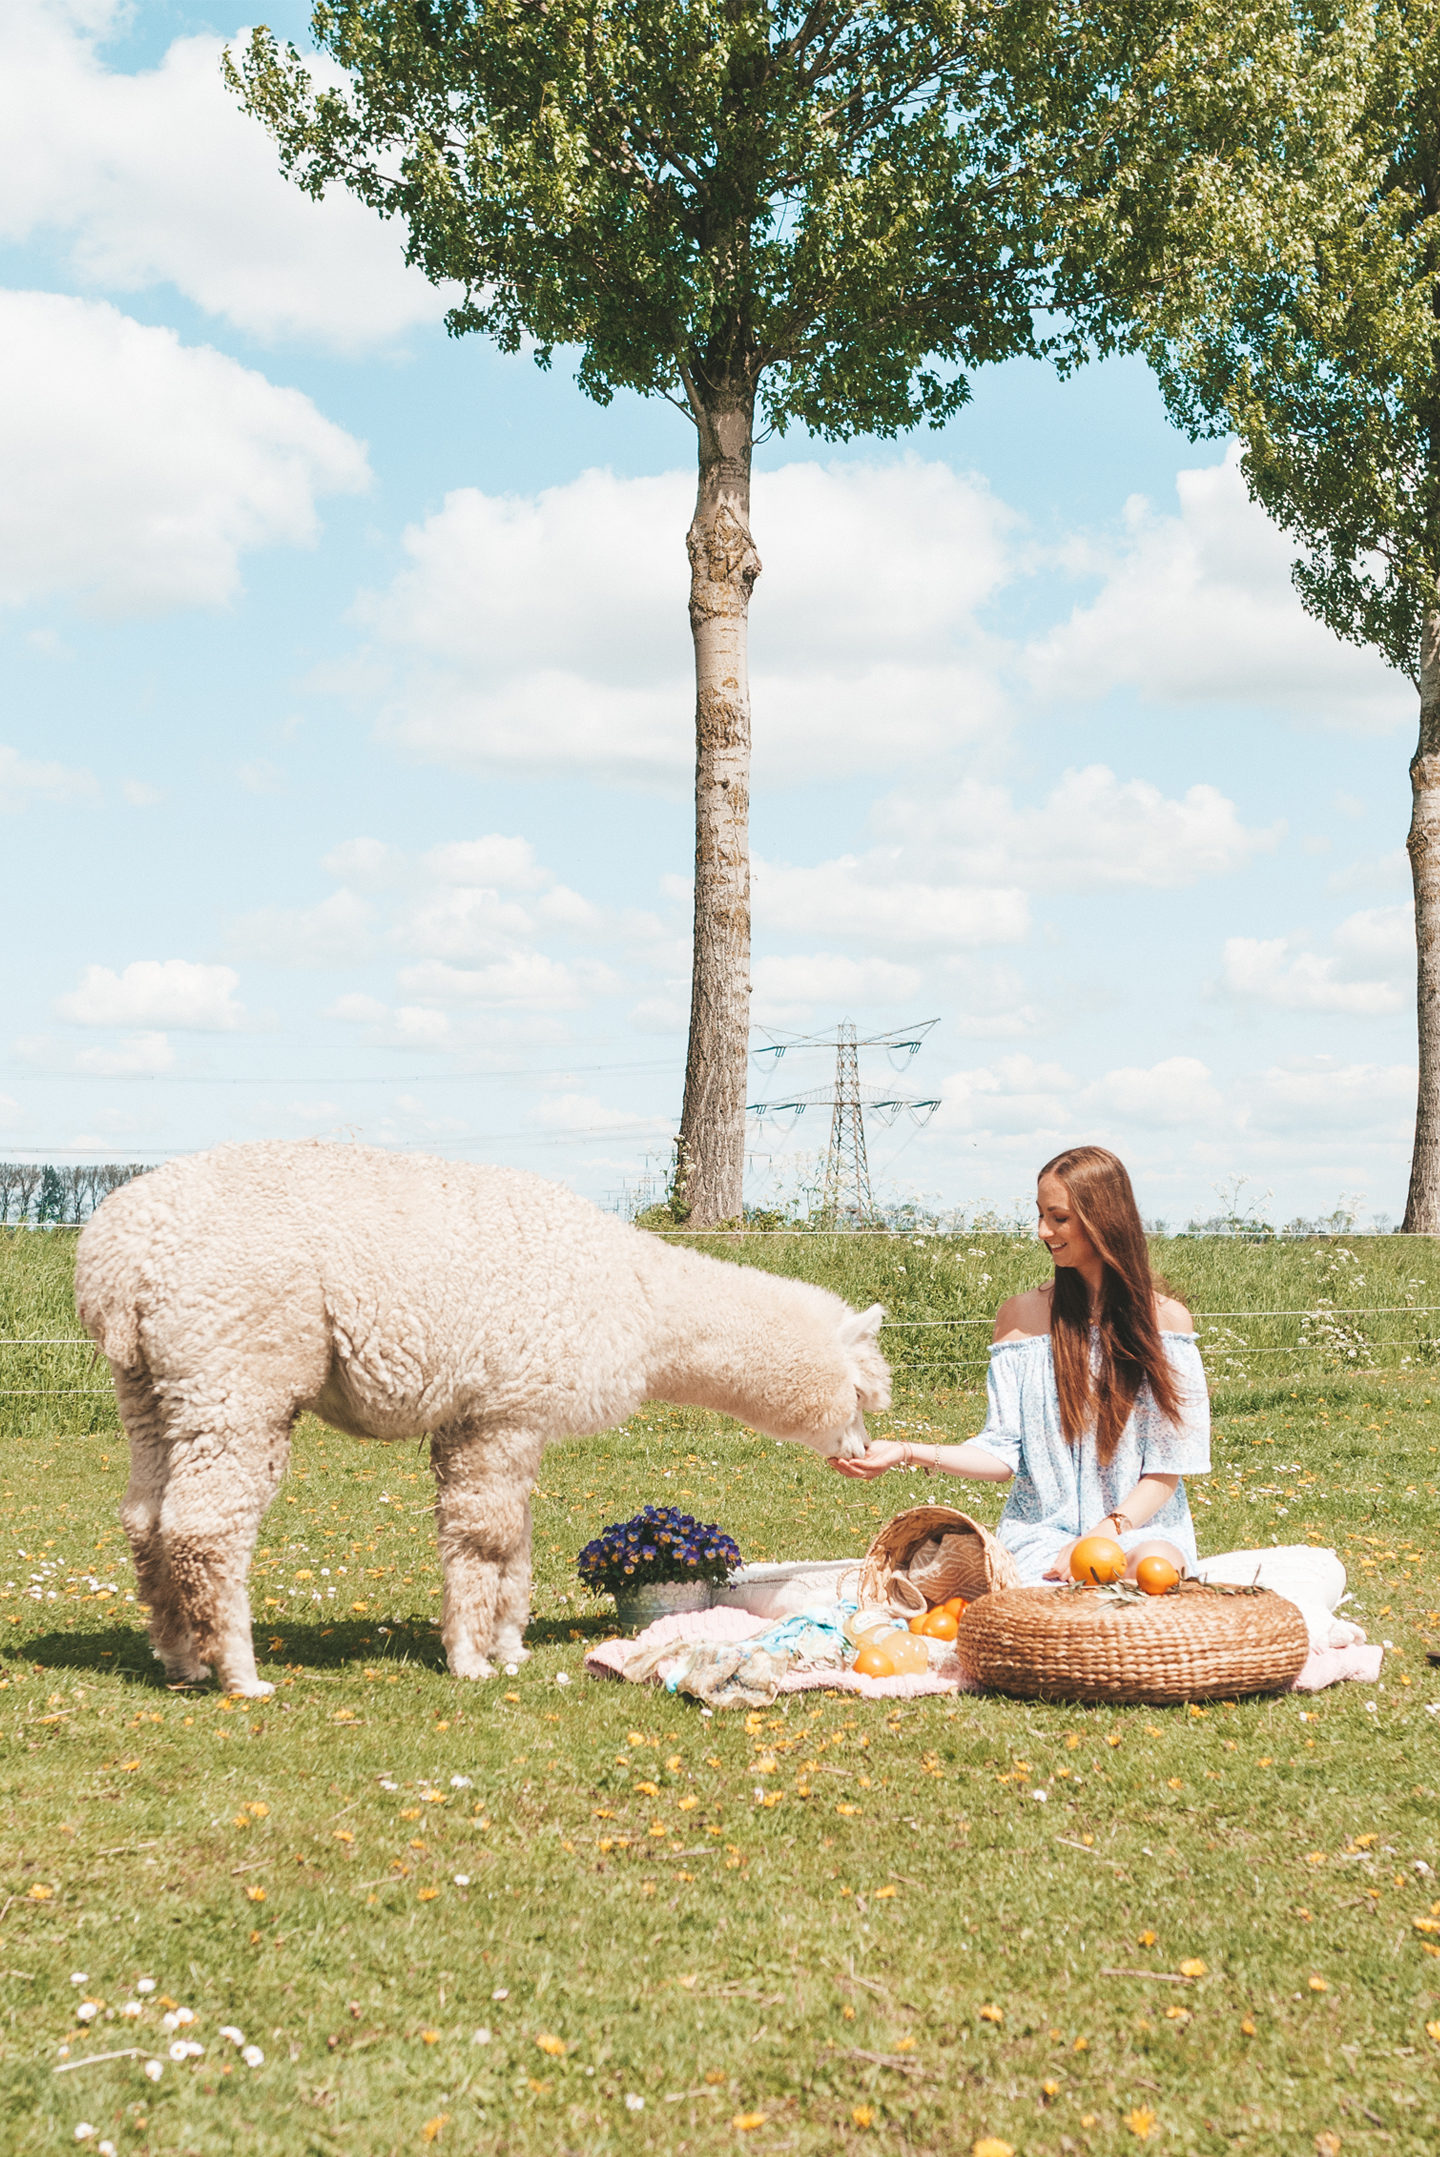 Spa fruit alpaca picnic